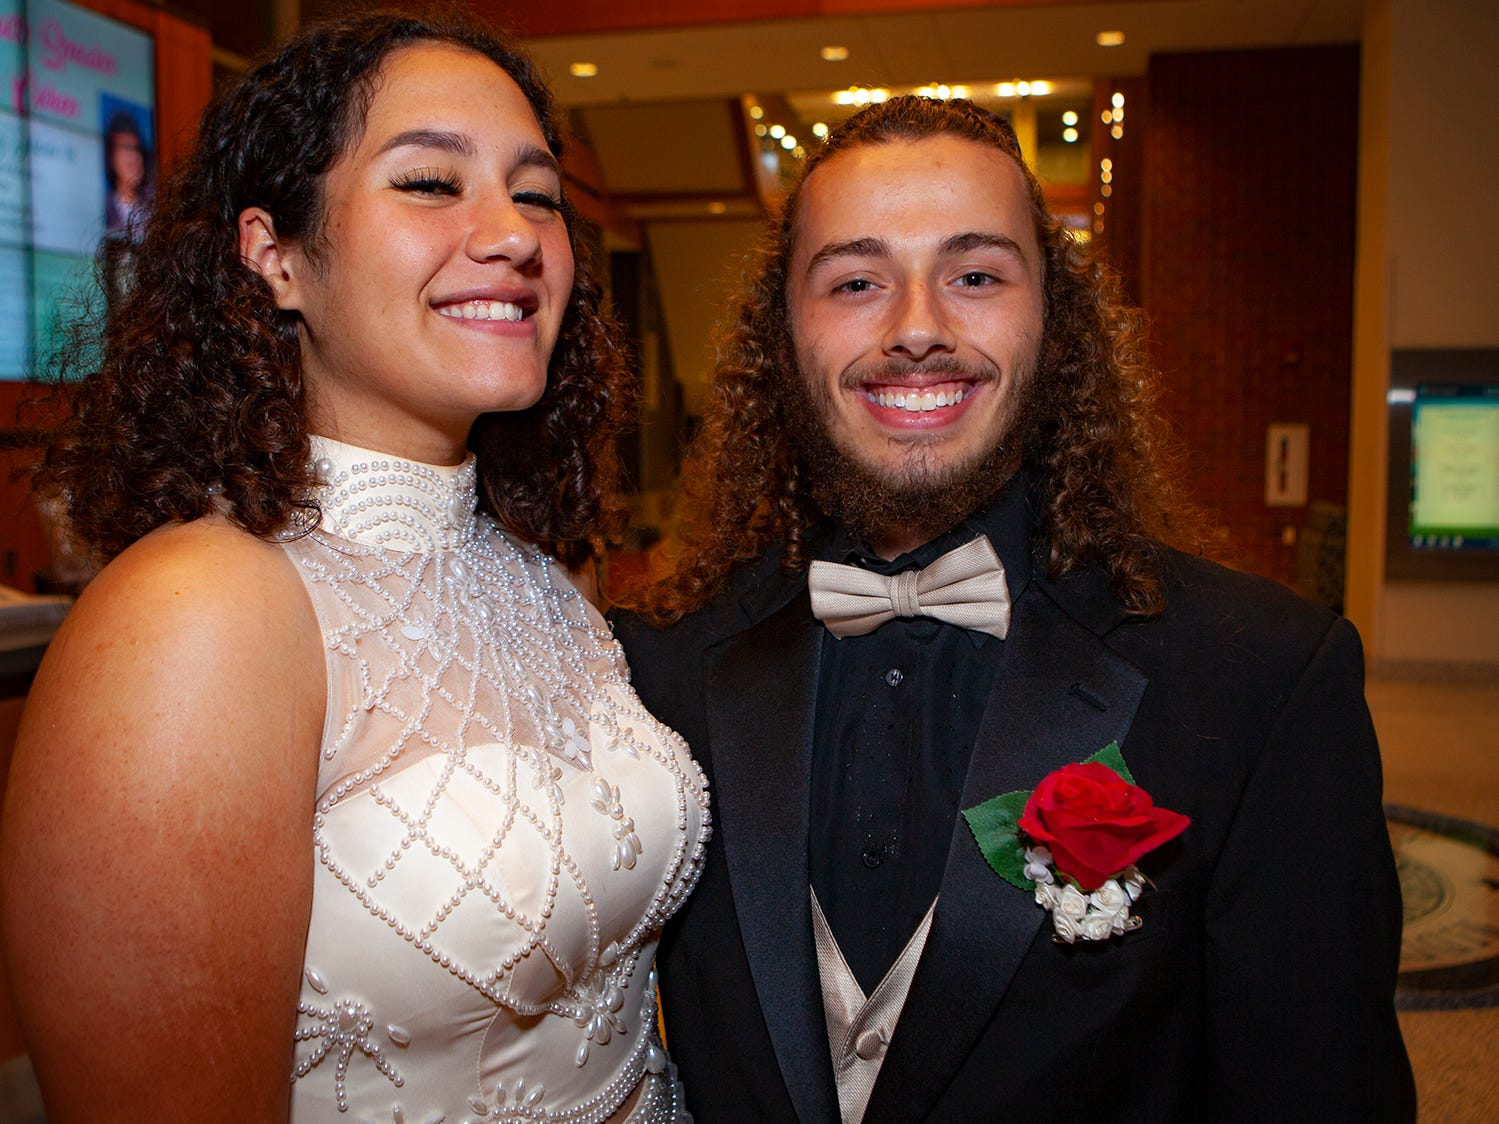 Quierra Miller and Brandon Morell at La Vergne High's prom, held Saturday, May 4, 2019 at MTSU's Student Union Building.